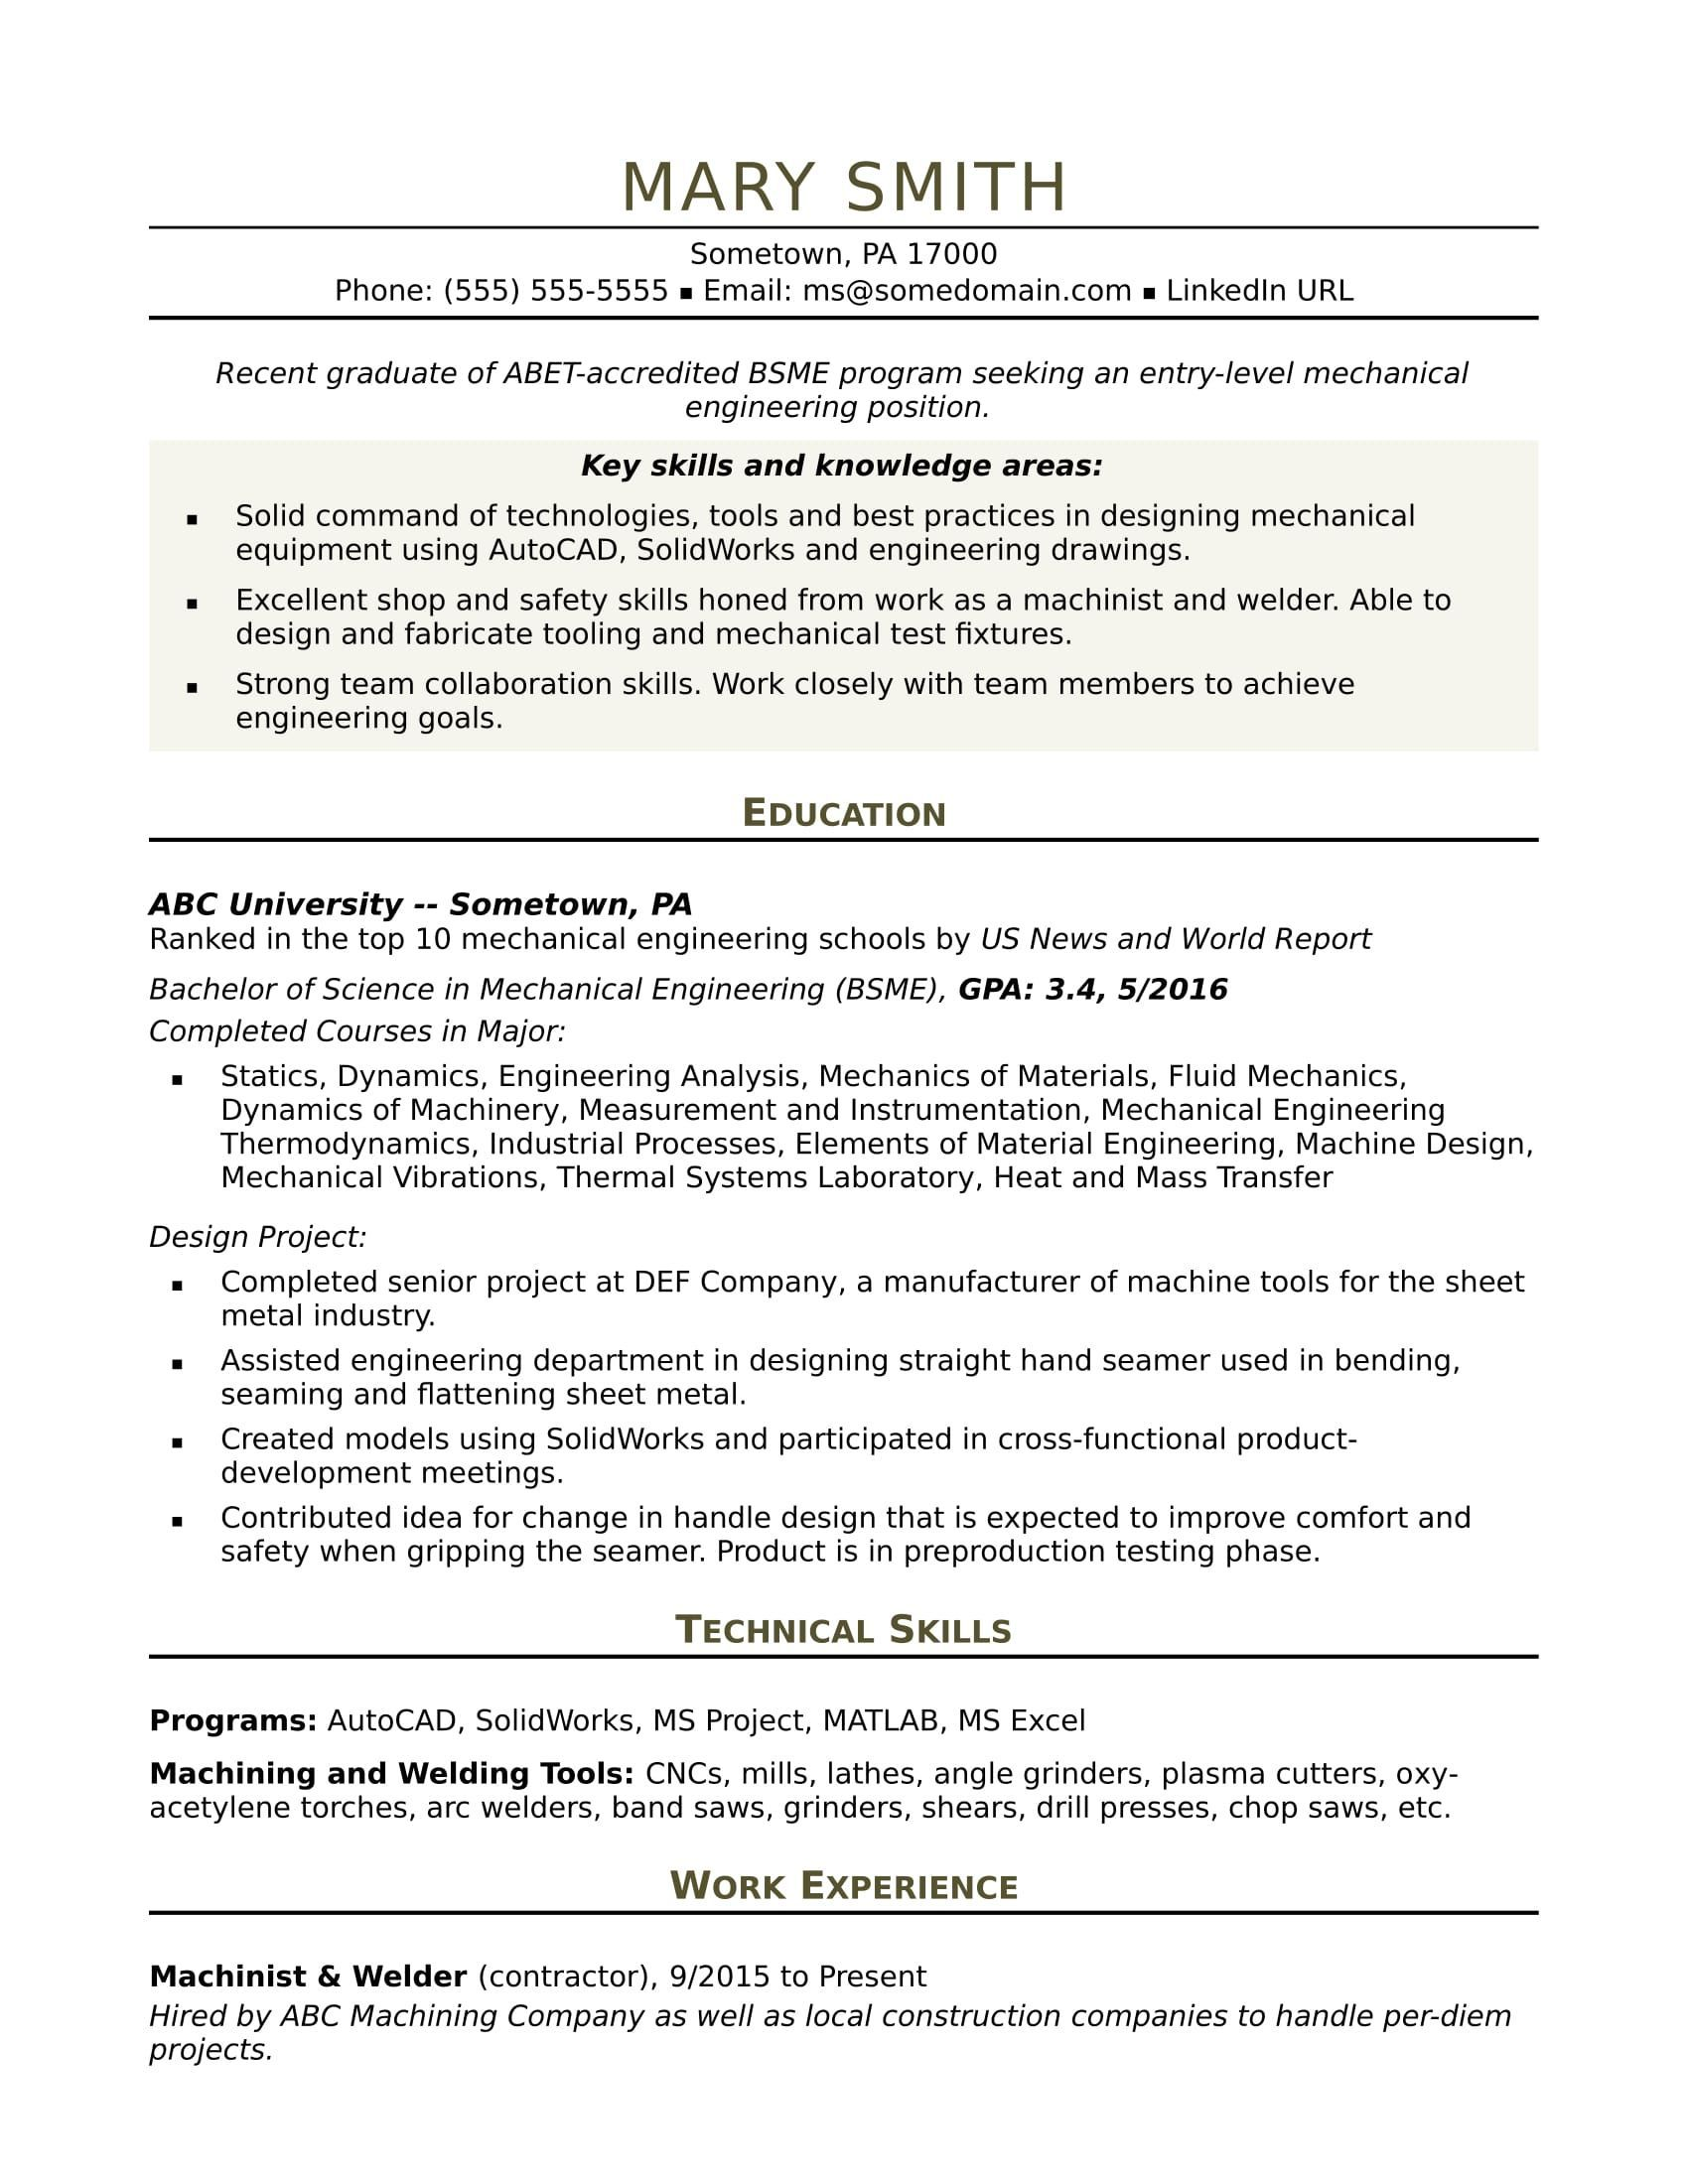 Entry Level Mechanical Engineering Resume Alluring Sample Resume For An Entrylevel Mechanical Engineer .